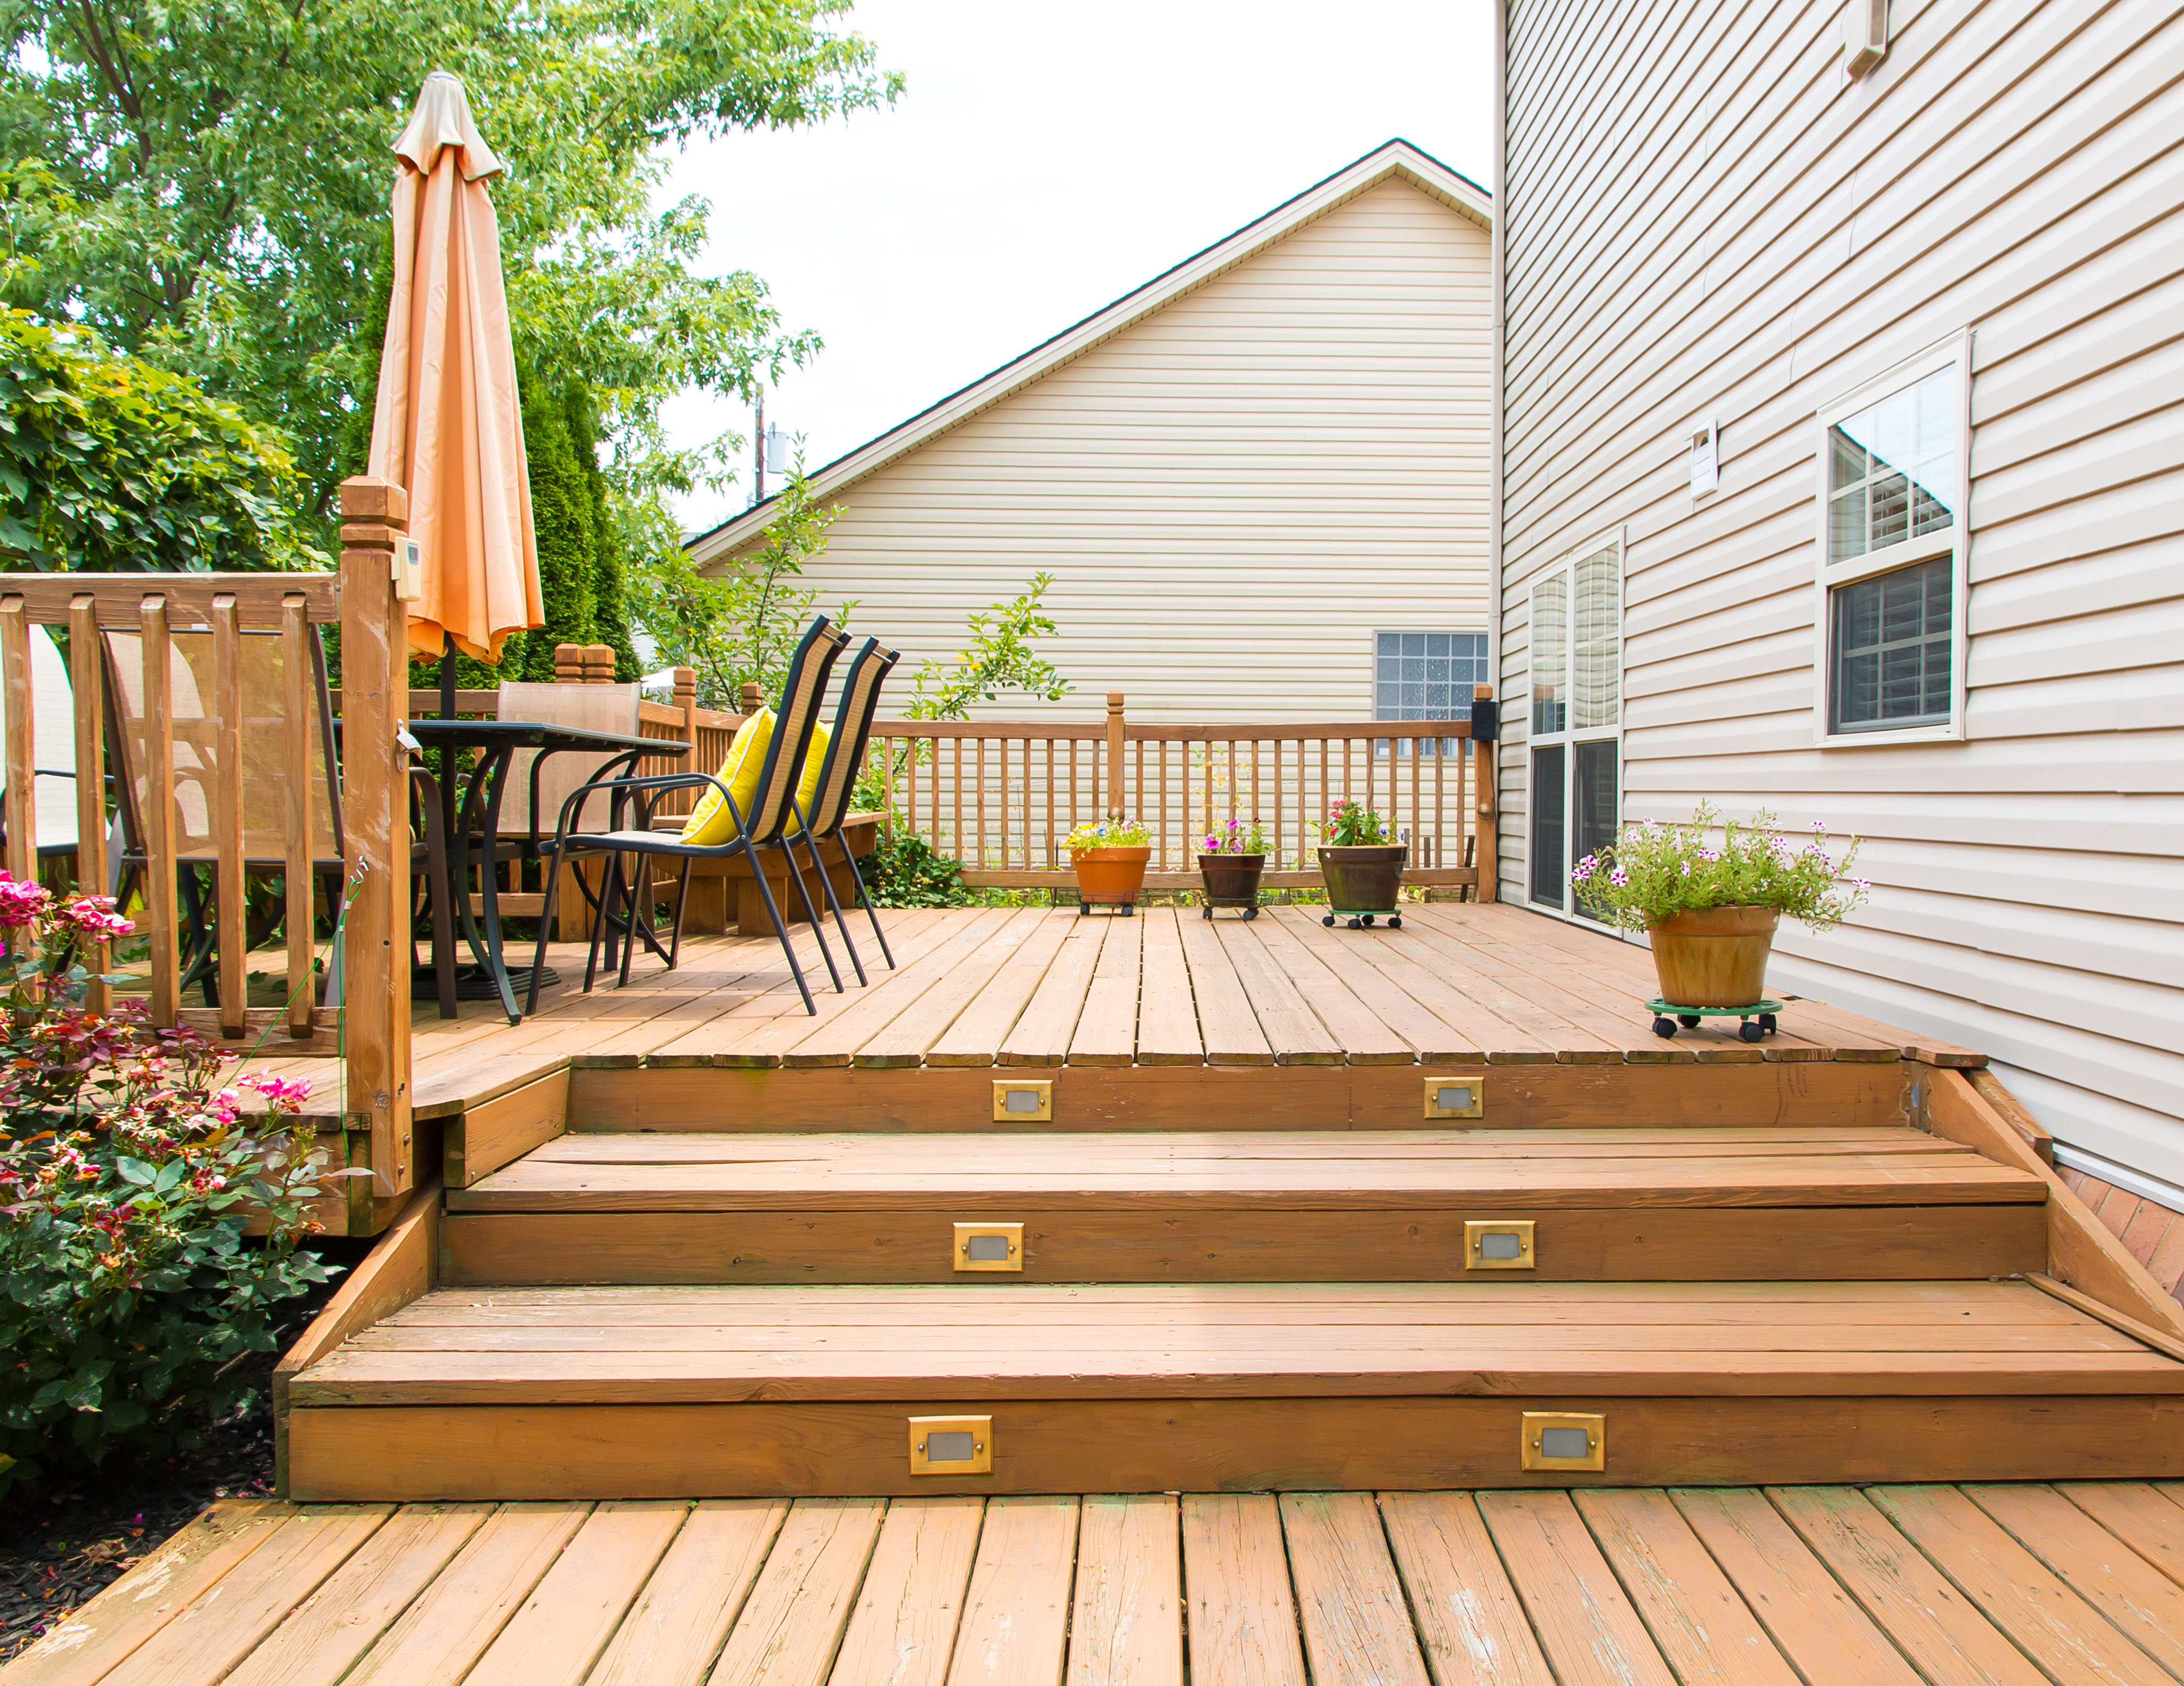 Modern wooden patio and garden area of a family house